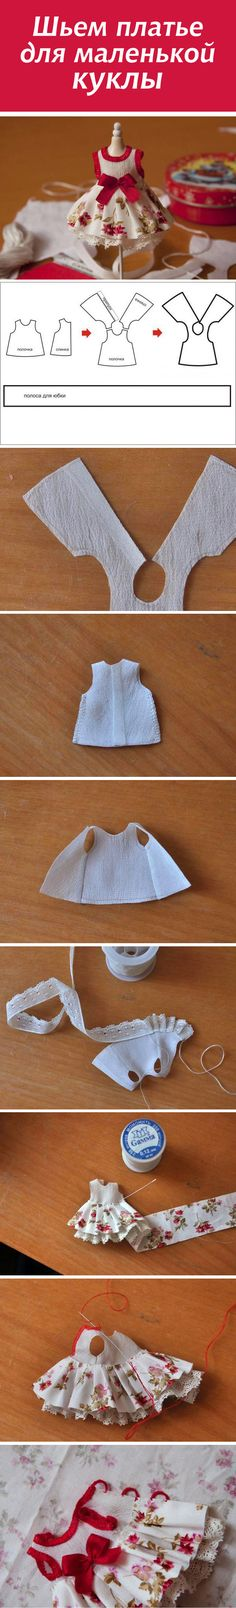 Doll Outfit Tutorial #diy #tutorial #howto #doll #dolloutfit